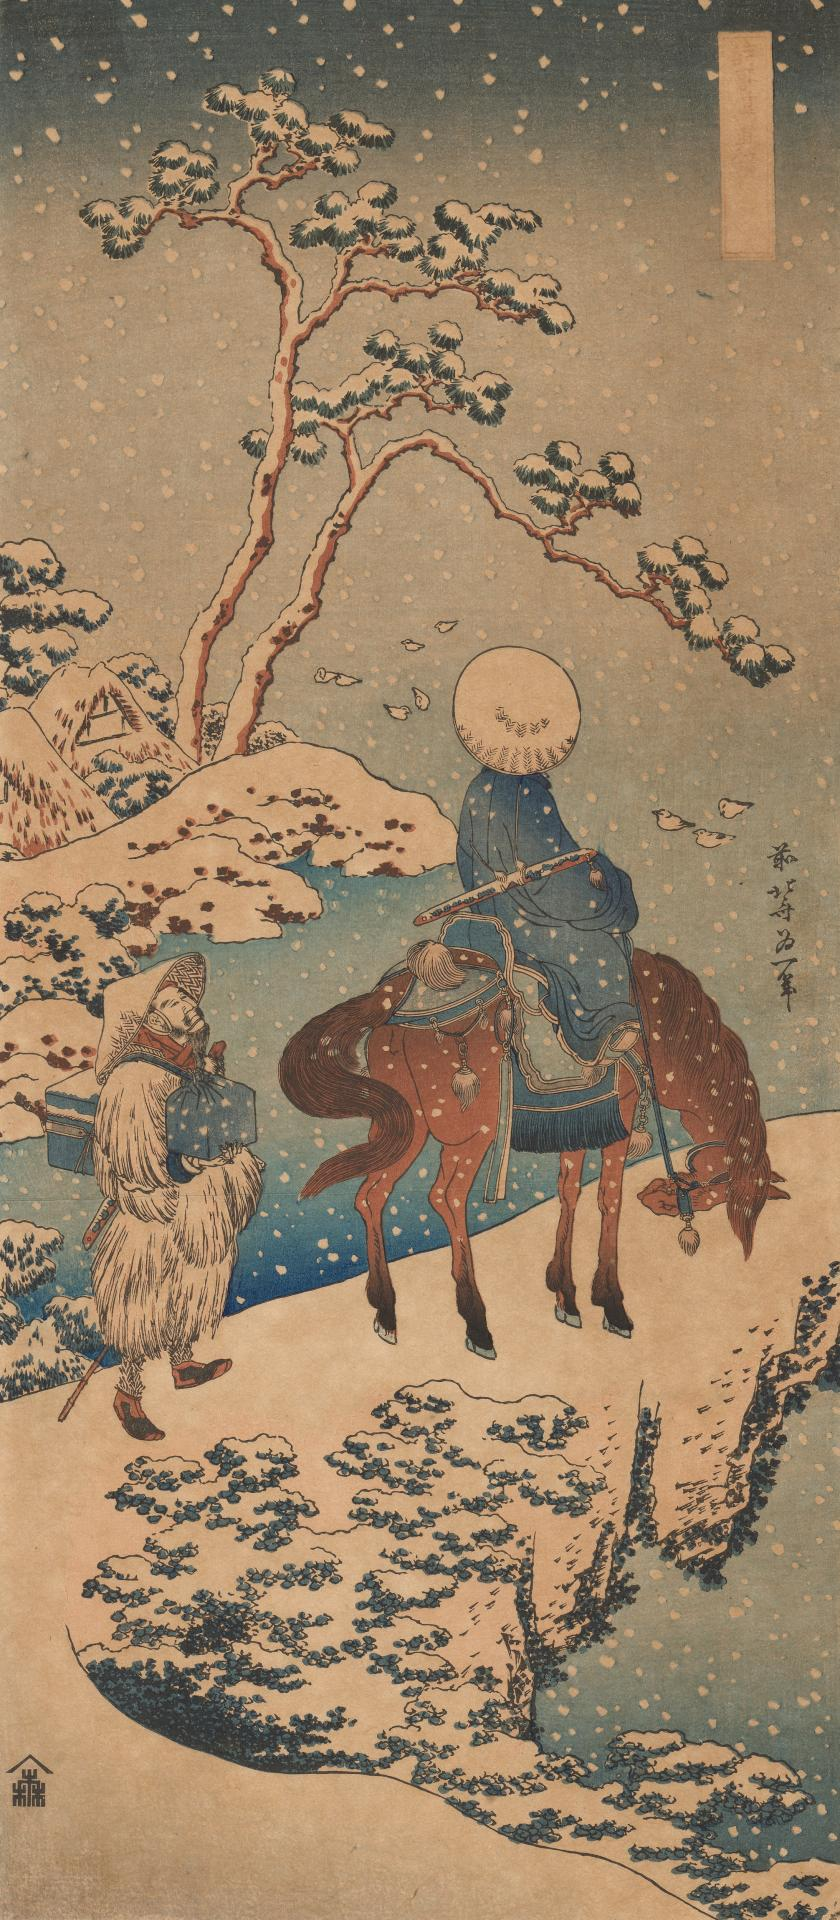 Traveller in snow